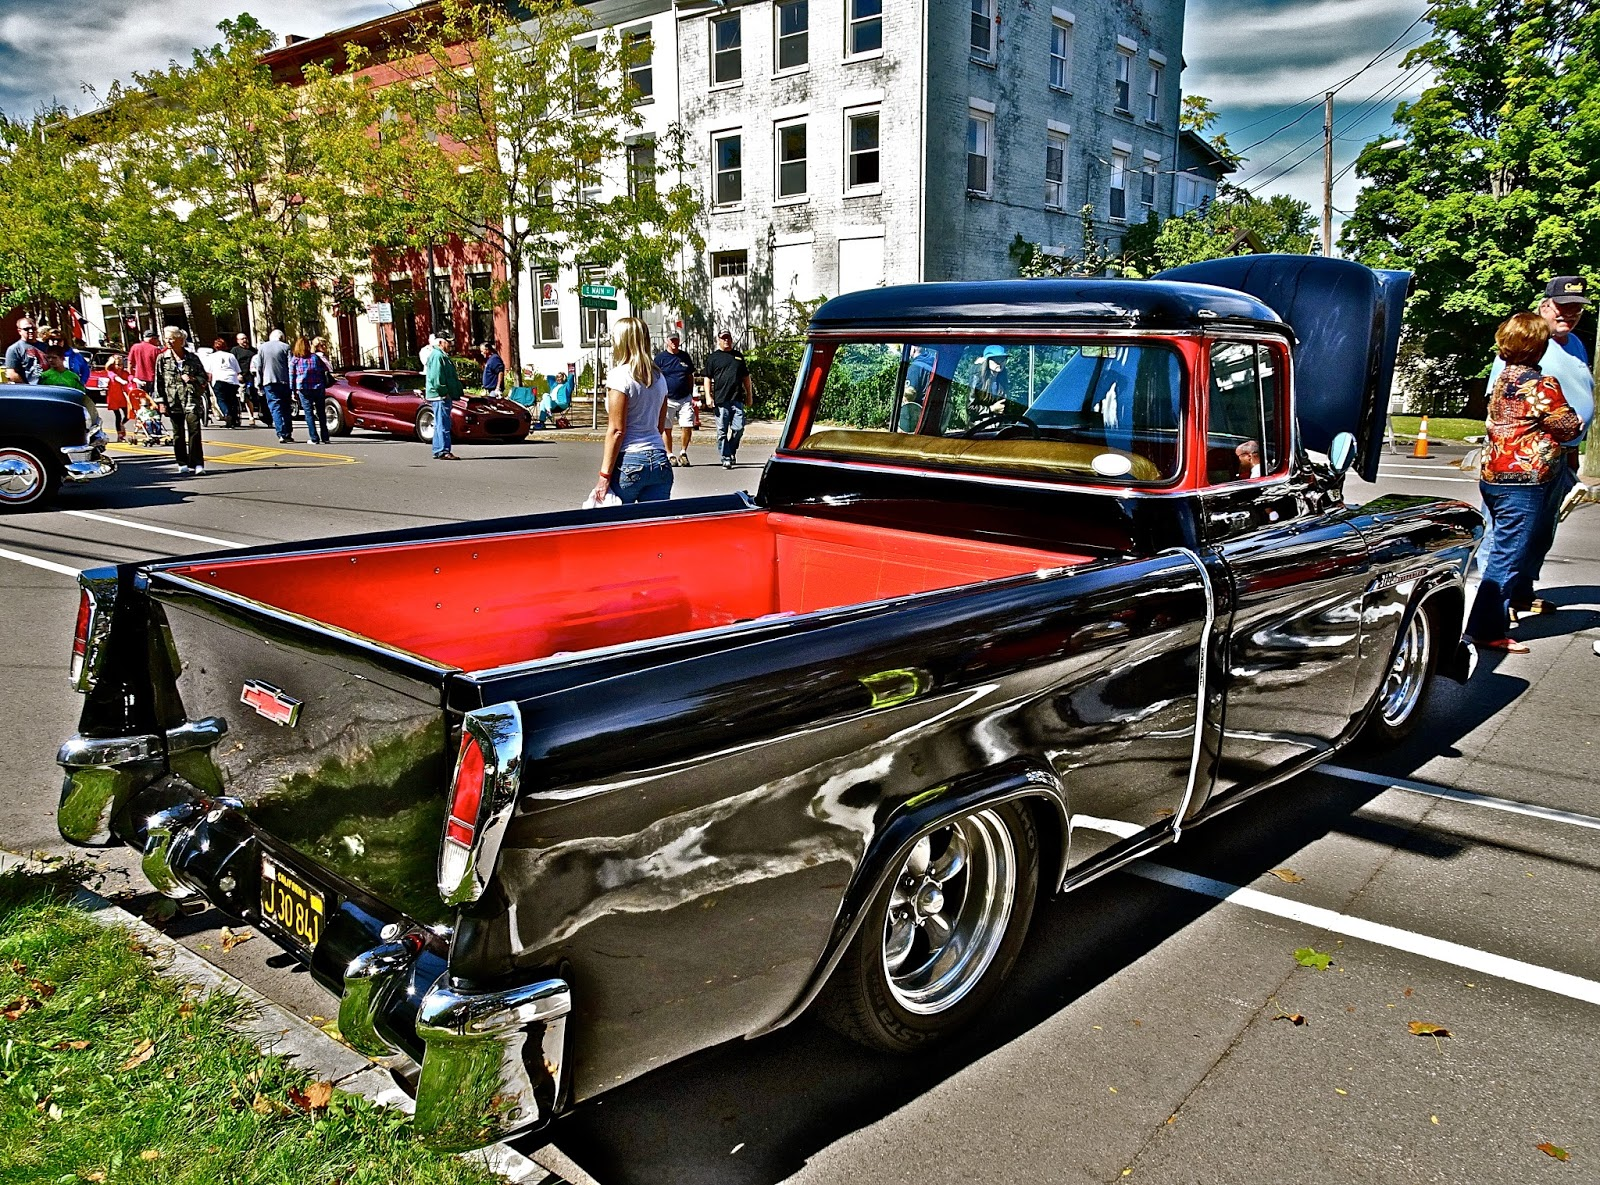 55 Chevy Cameo Tom The Backroads Traveller 1955 Truck Fasteners To Exterior Of Pickup Box Tailgate On Swings Down Cables That Retract Via Small Hidden Spring Loaded Pulleys